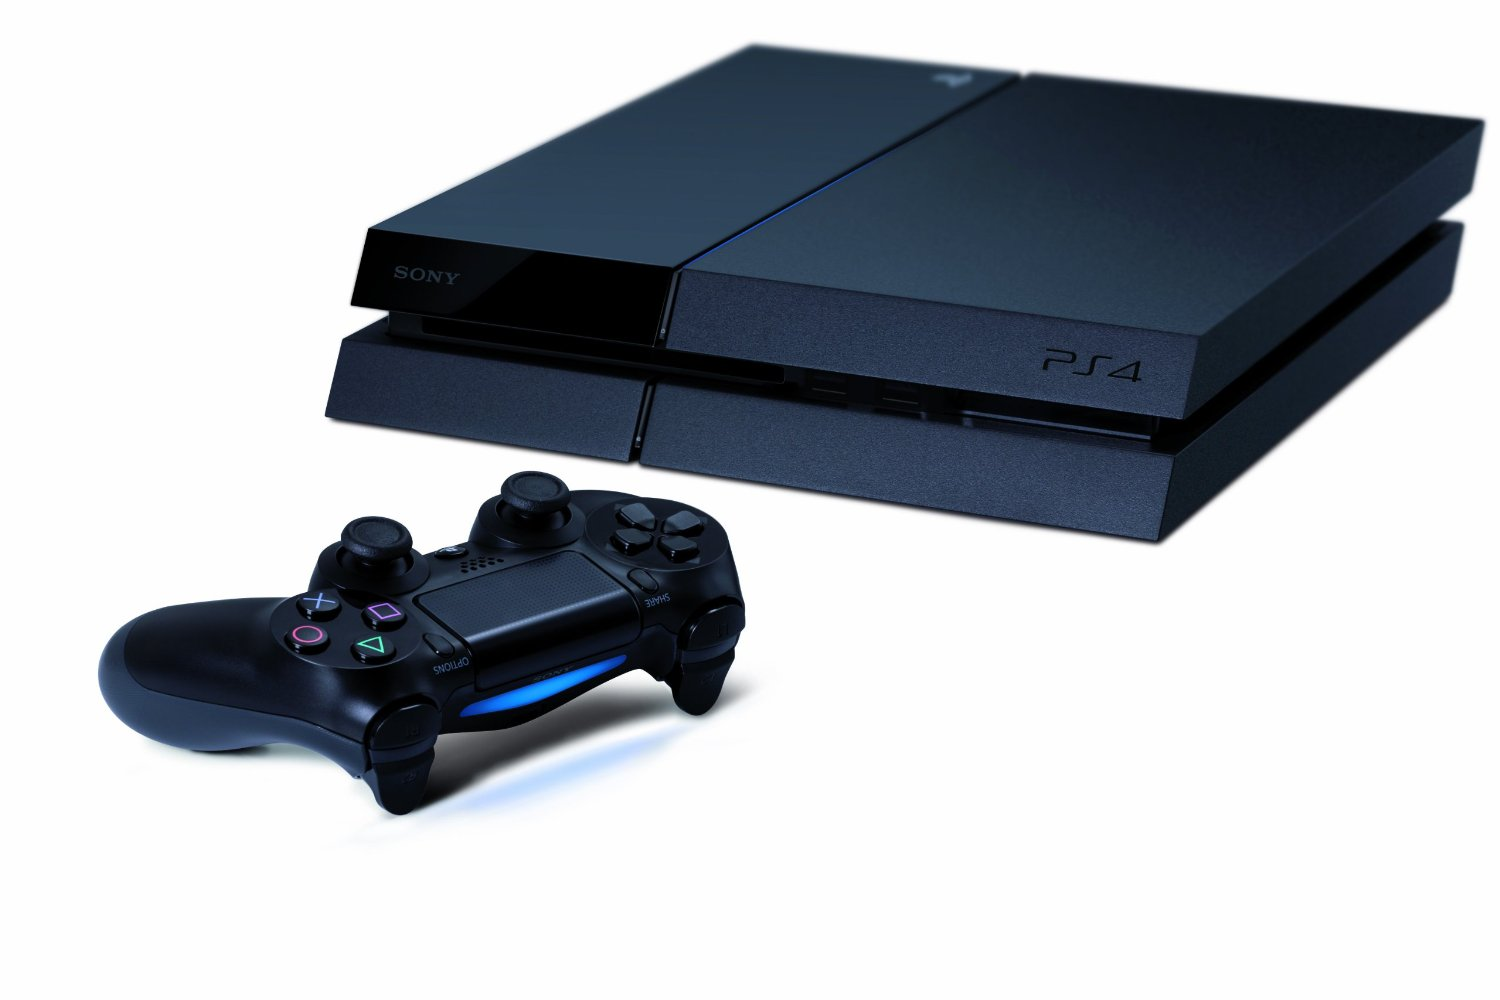 playstation 4 consola  Oficial: Sony a lansat consola PlayStation 4 playstation 4 consola